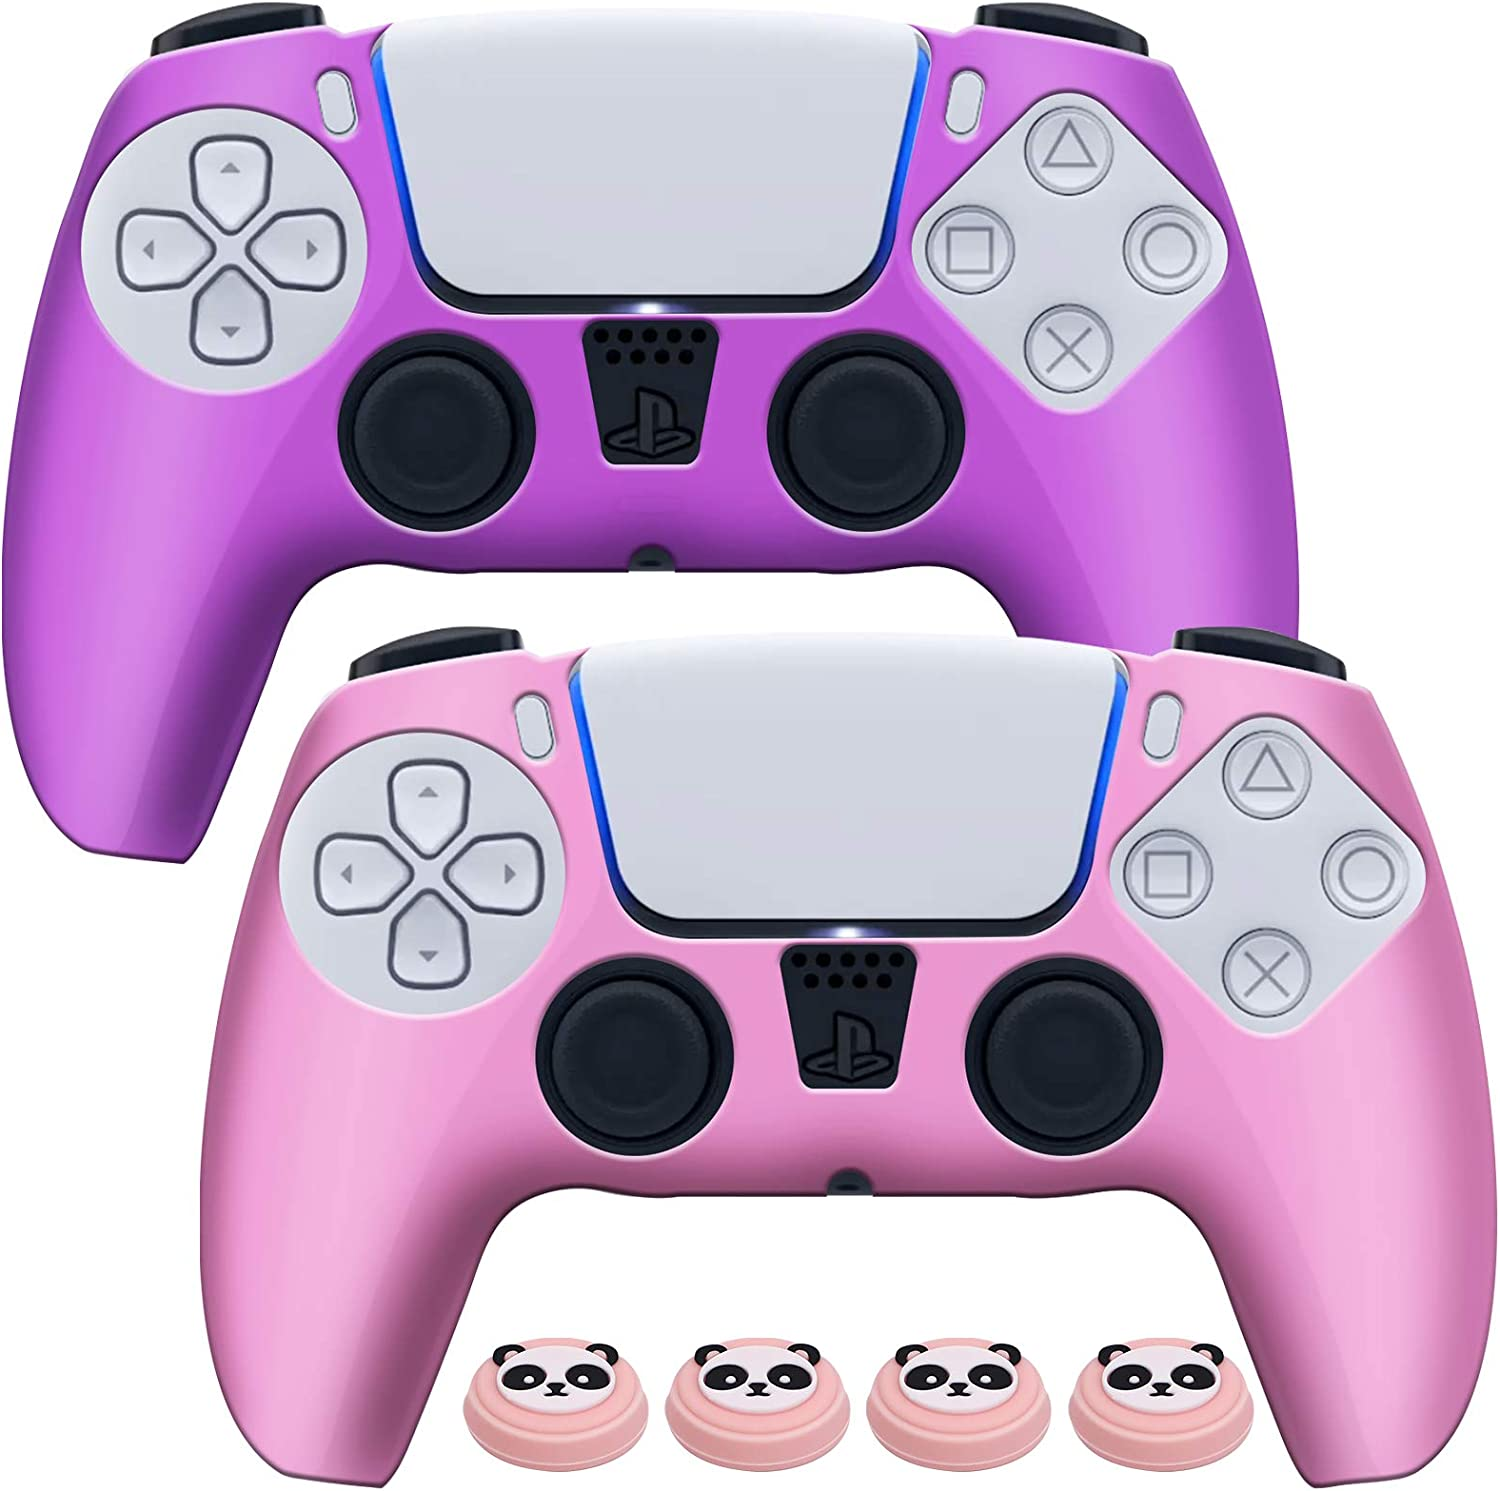 EZCO Max 89% OFF 2-Pack PS5 Controller Skins Protector Gr Attention brand Silicone Anti-Slip